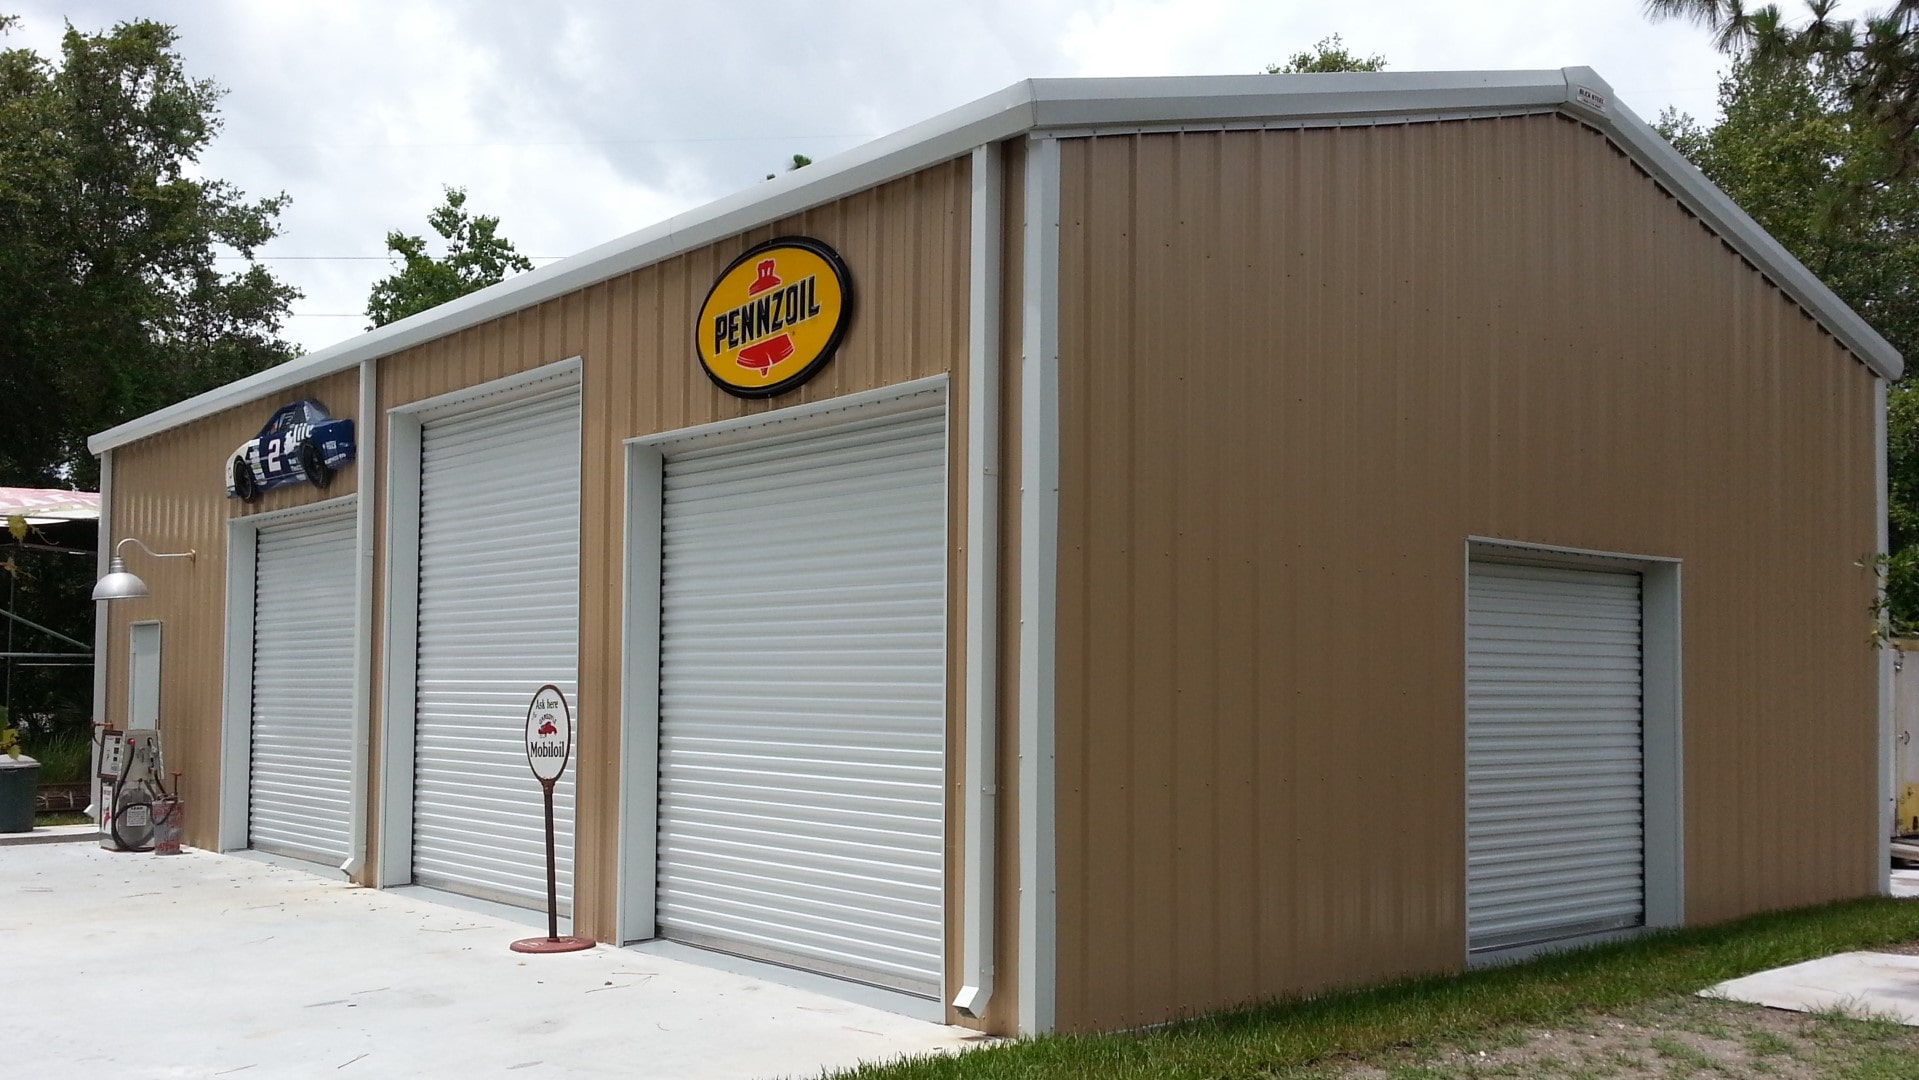 Tan metal garage kit with white roof and trim, walk door, and 4 rollup doors. View of front sidwall and right endwall.